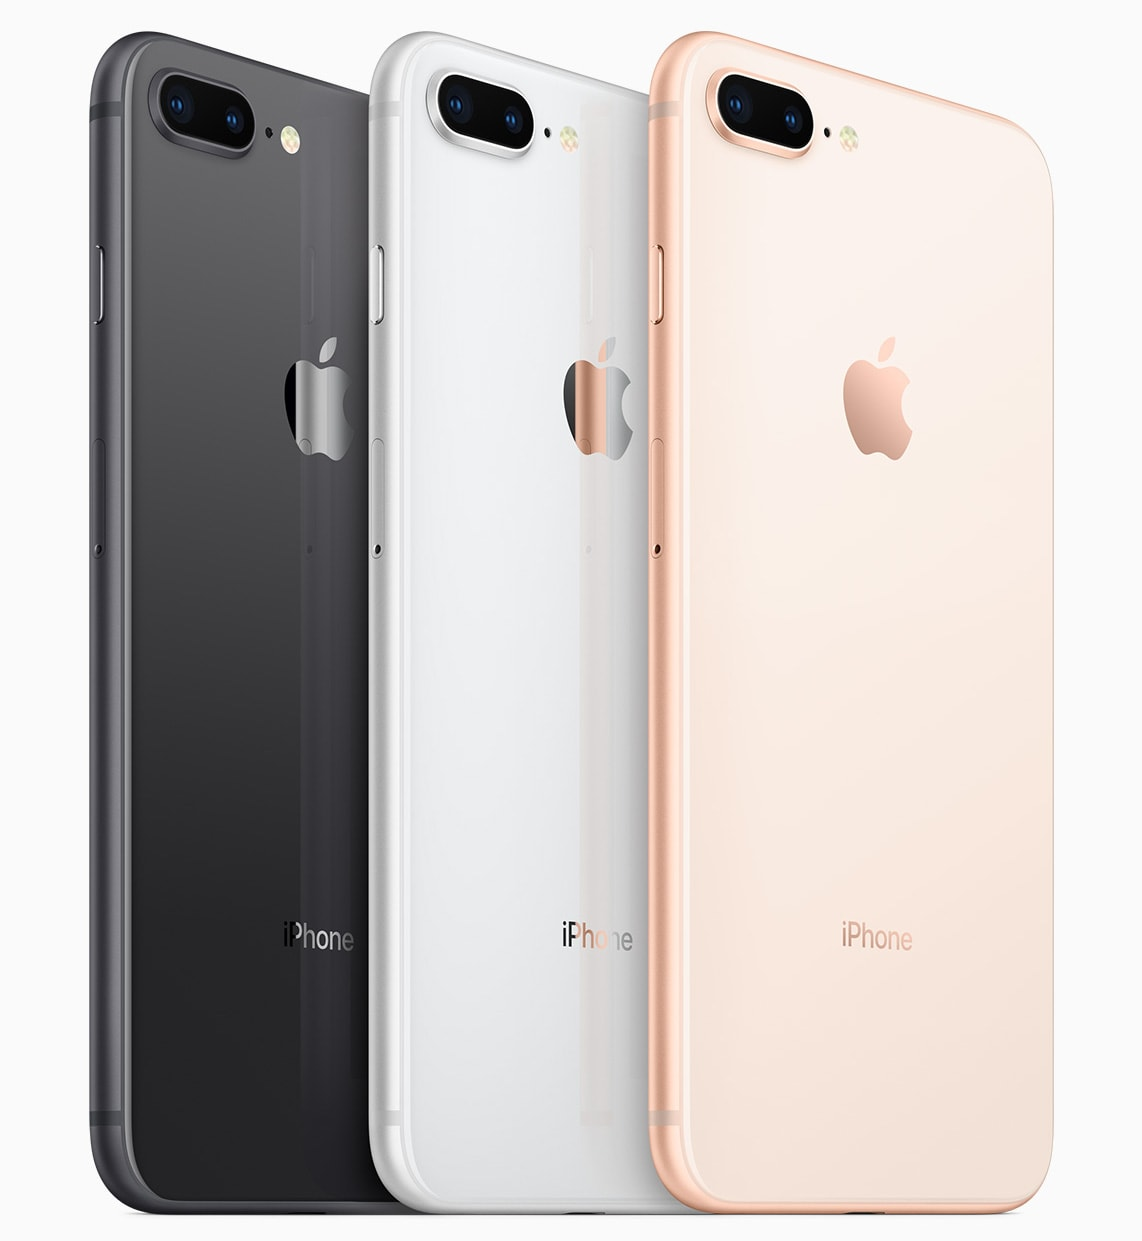 Iphone 8 Plus-256Gb (Cũ 95-97%)